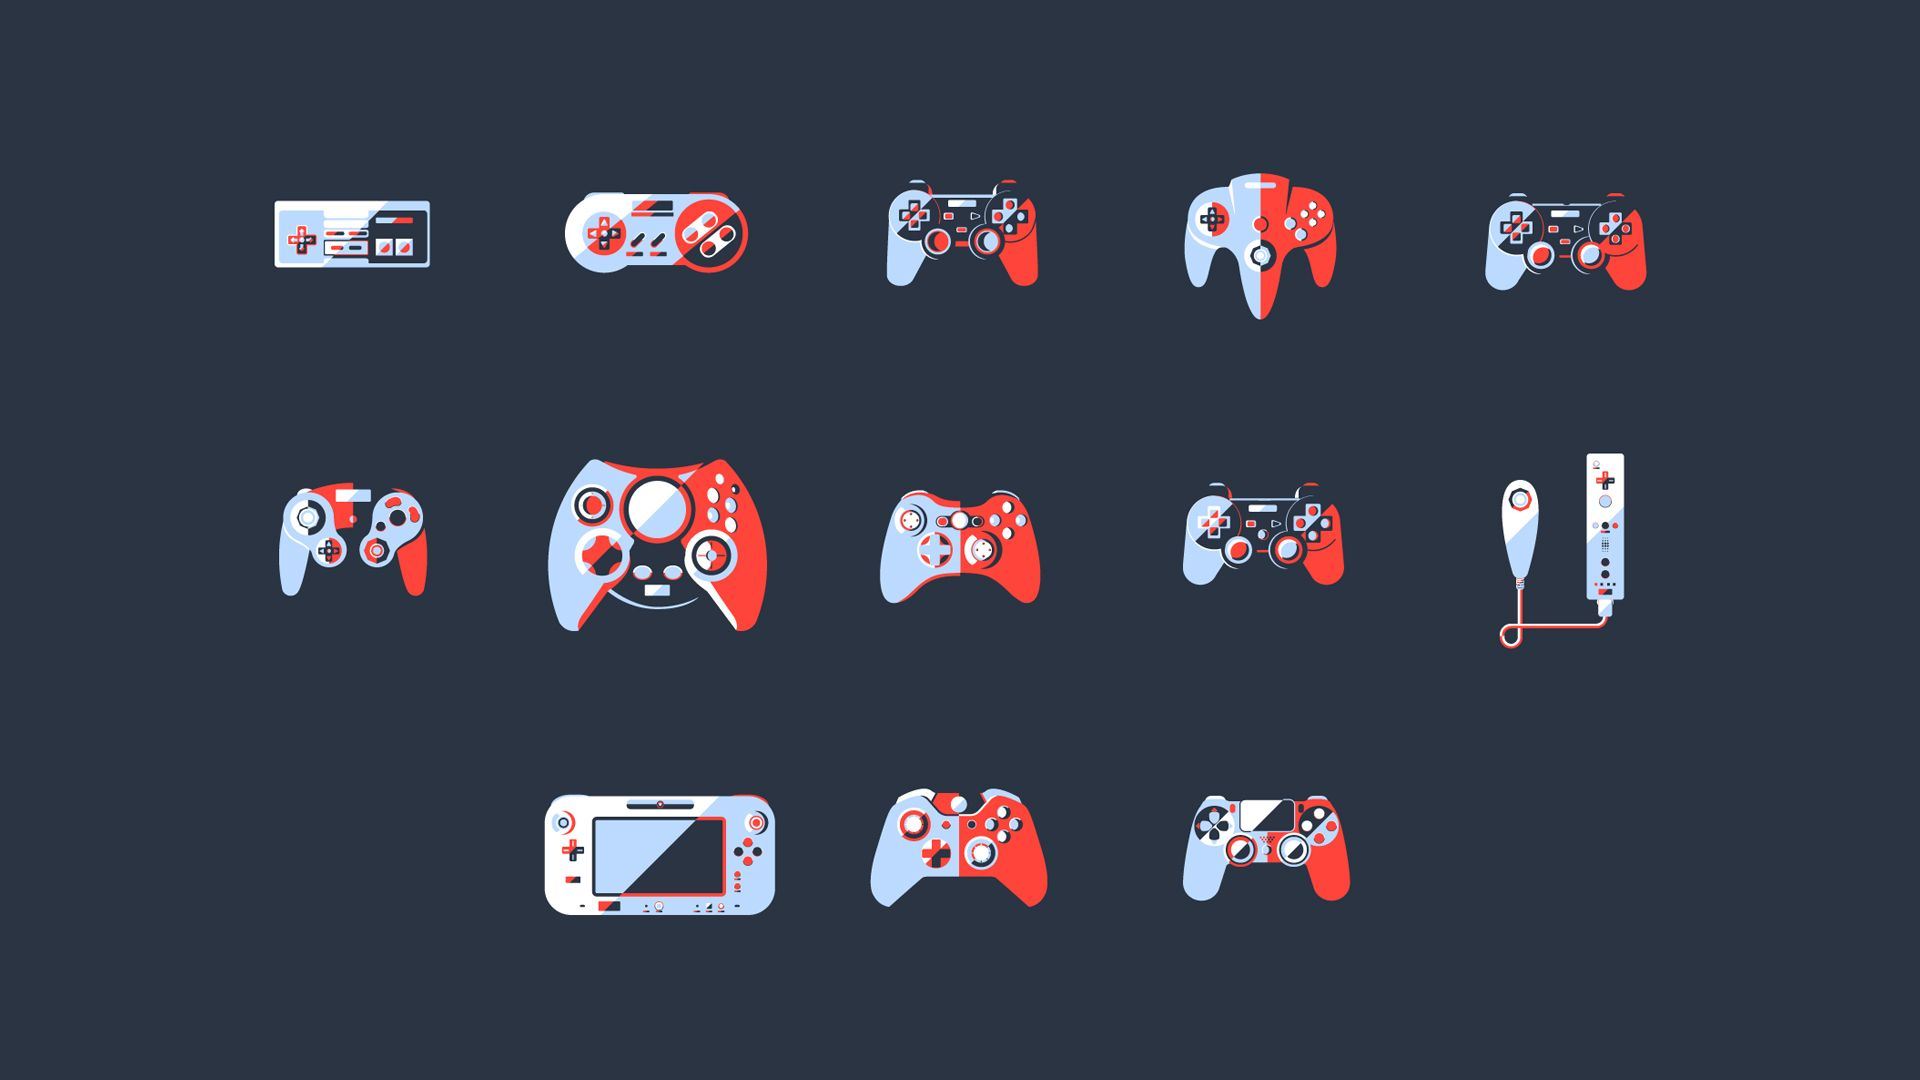 Video Game Controller Wallpapers Picture Retro Games Wallpaper Gaming Wallpapers Video Game Controller